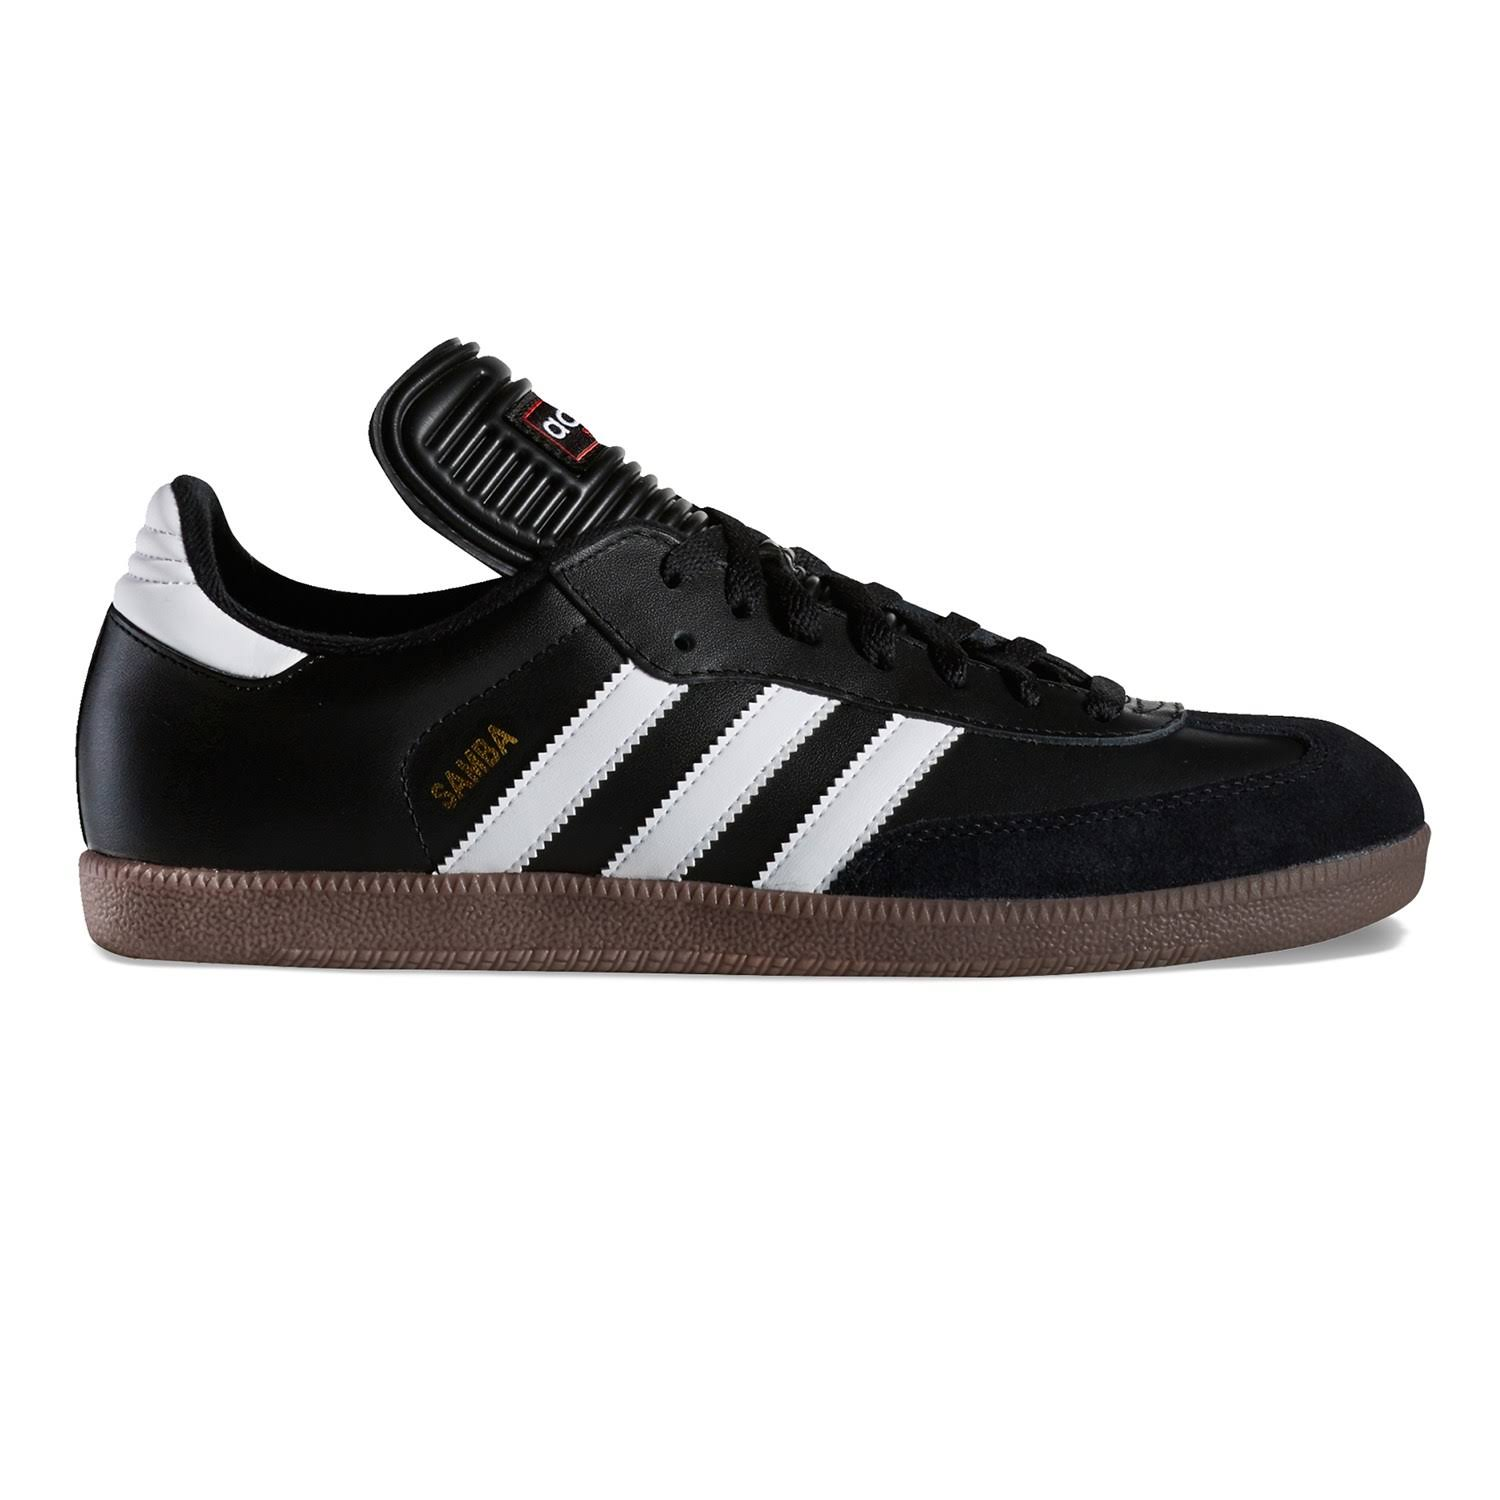 Adidas Men's Samba Classic Soccer Shoes - Black and White, 8 US